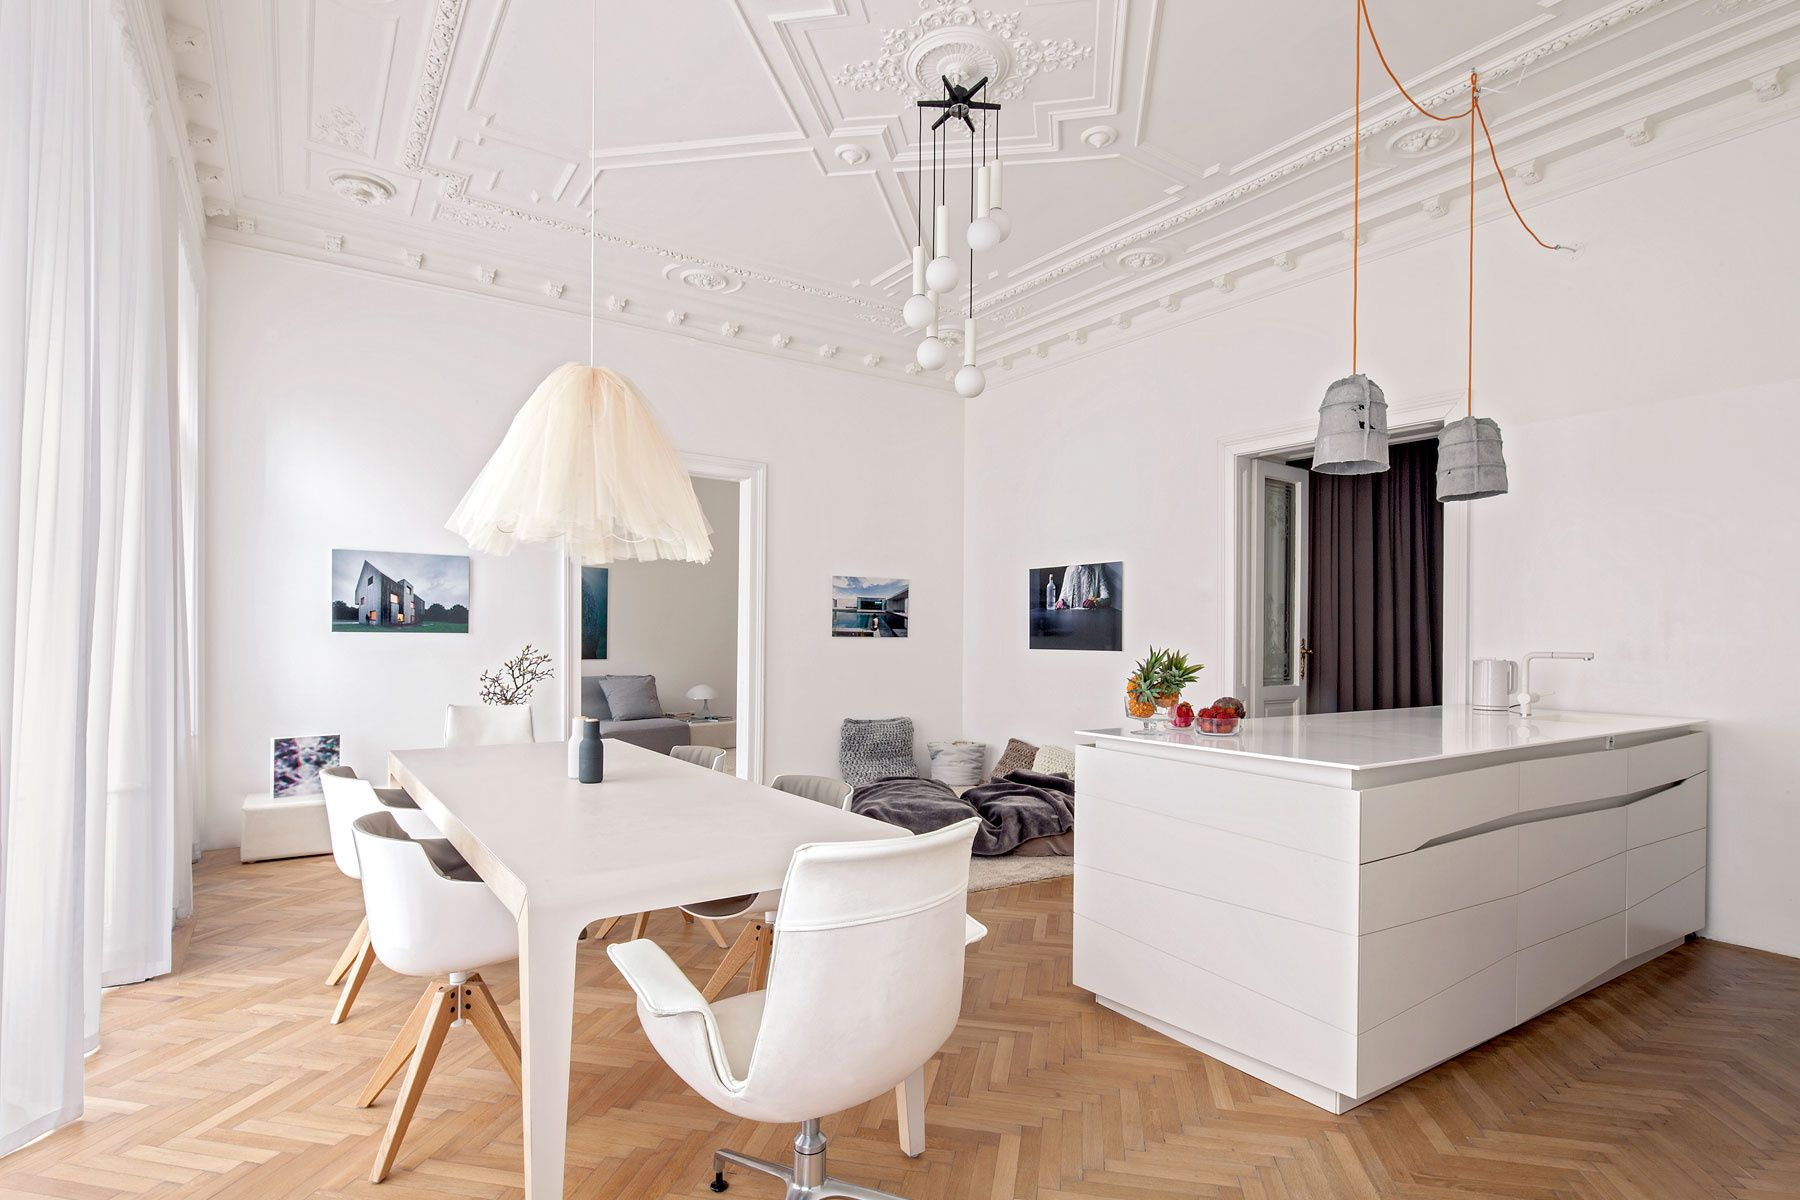 Casa H M En Viena Eclectic Happy Chic Apartment